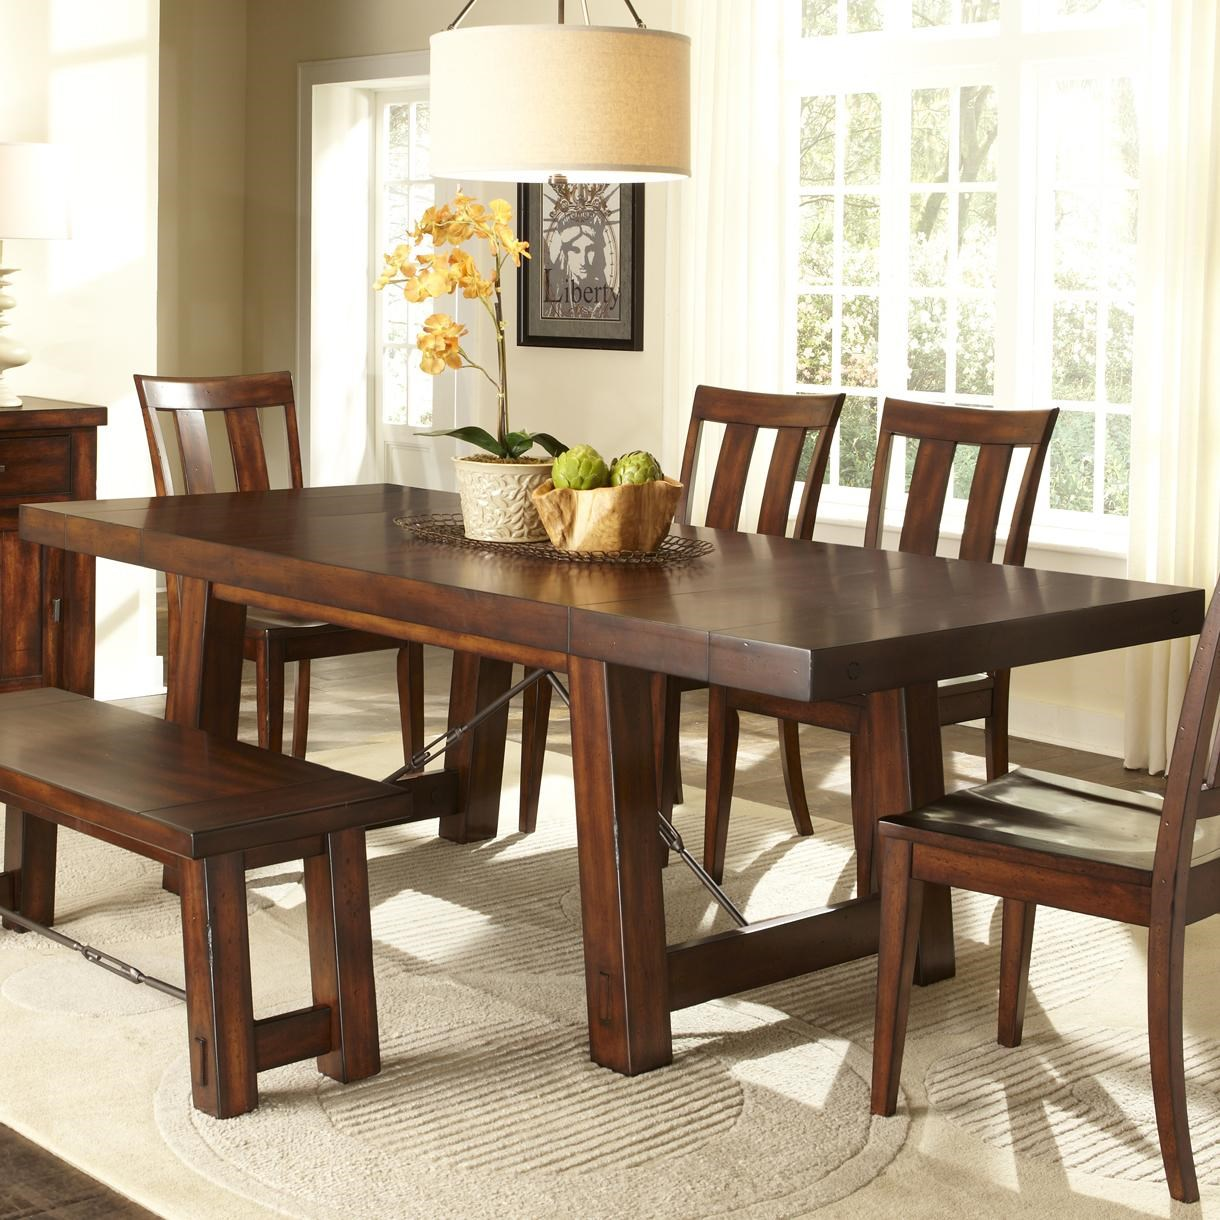 Liberty Furniture TahoeTrestle Table ...